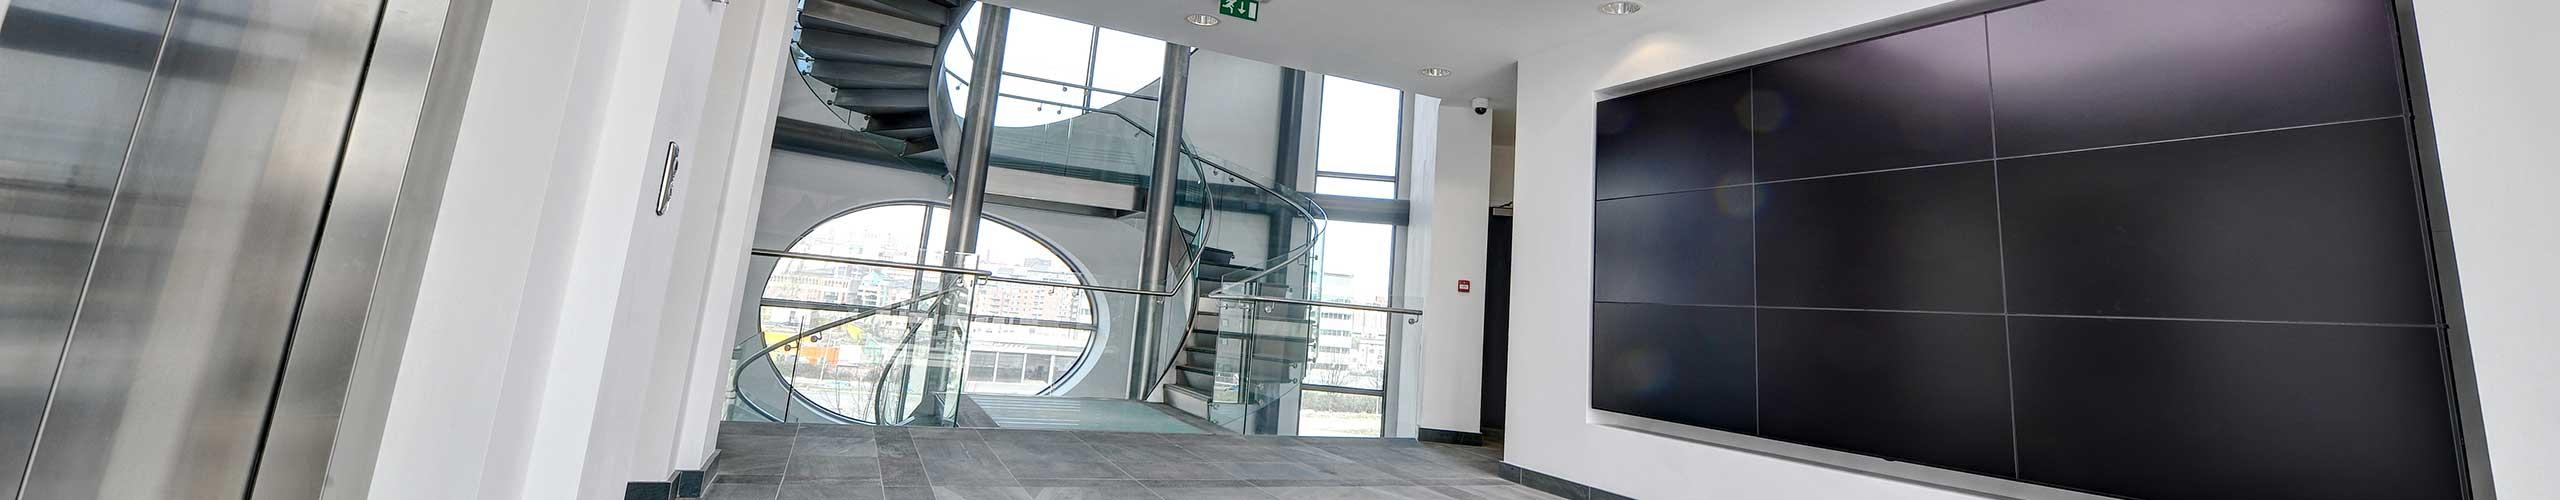 Northern Design Centre lifts